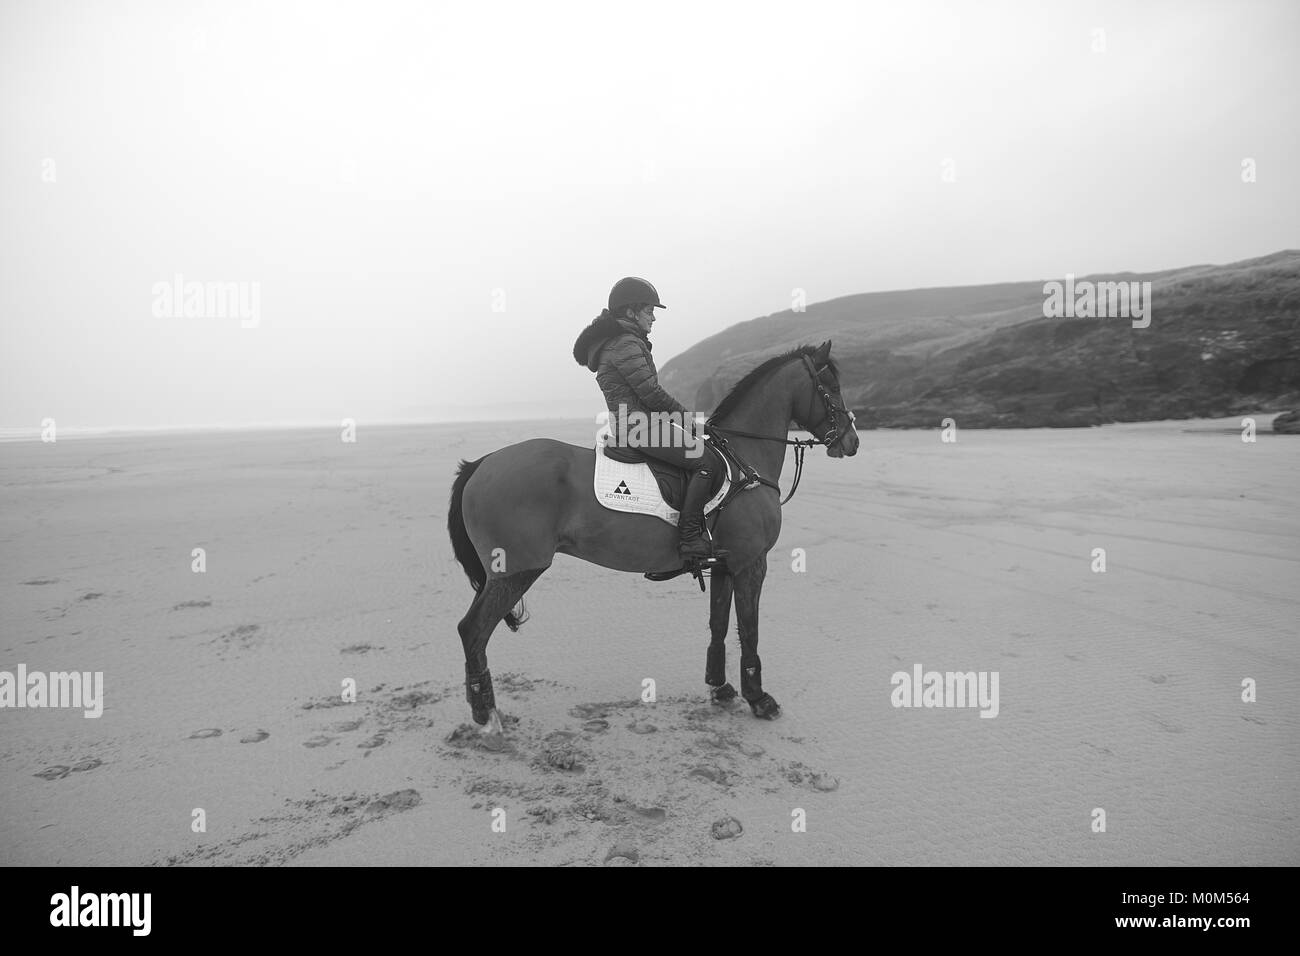 Horse rider stationary looking up the beach, Atmospheric shot taken in Black & white. Cliffs beach and mist - Stock Image